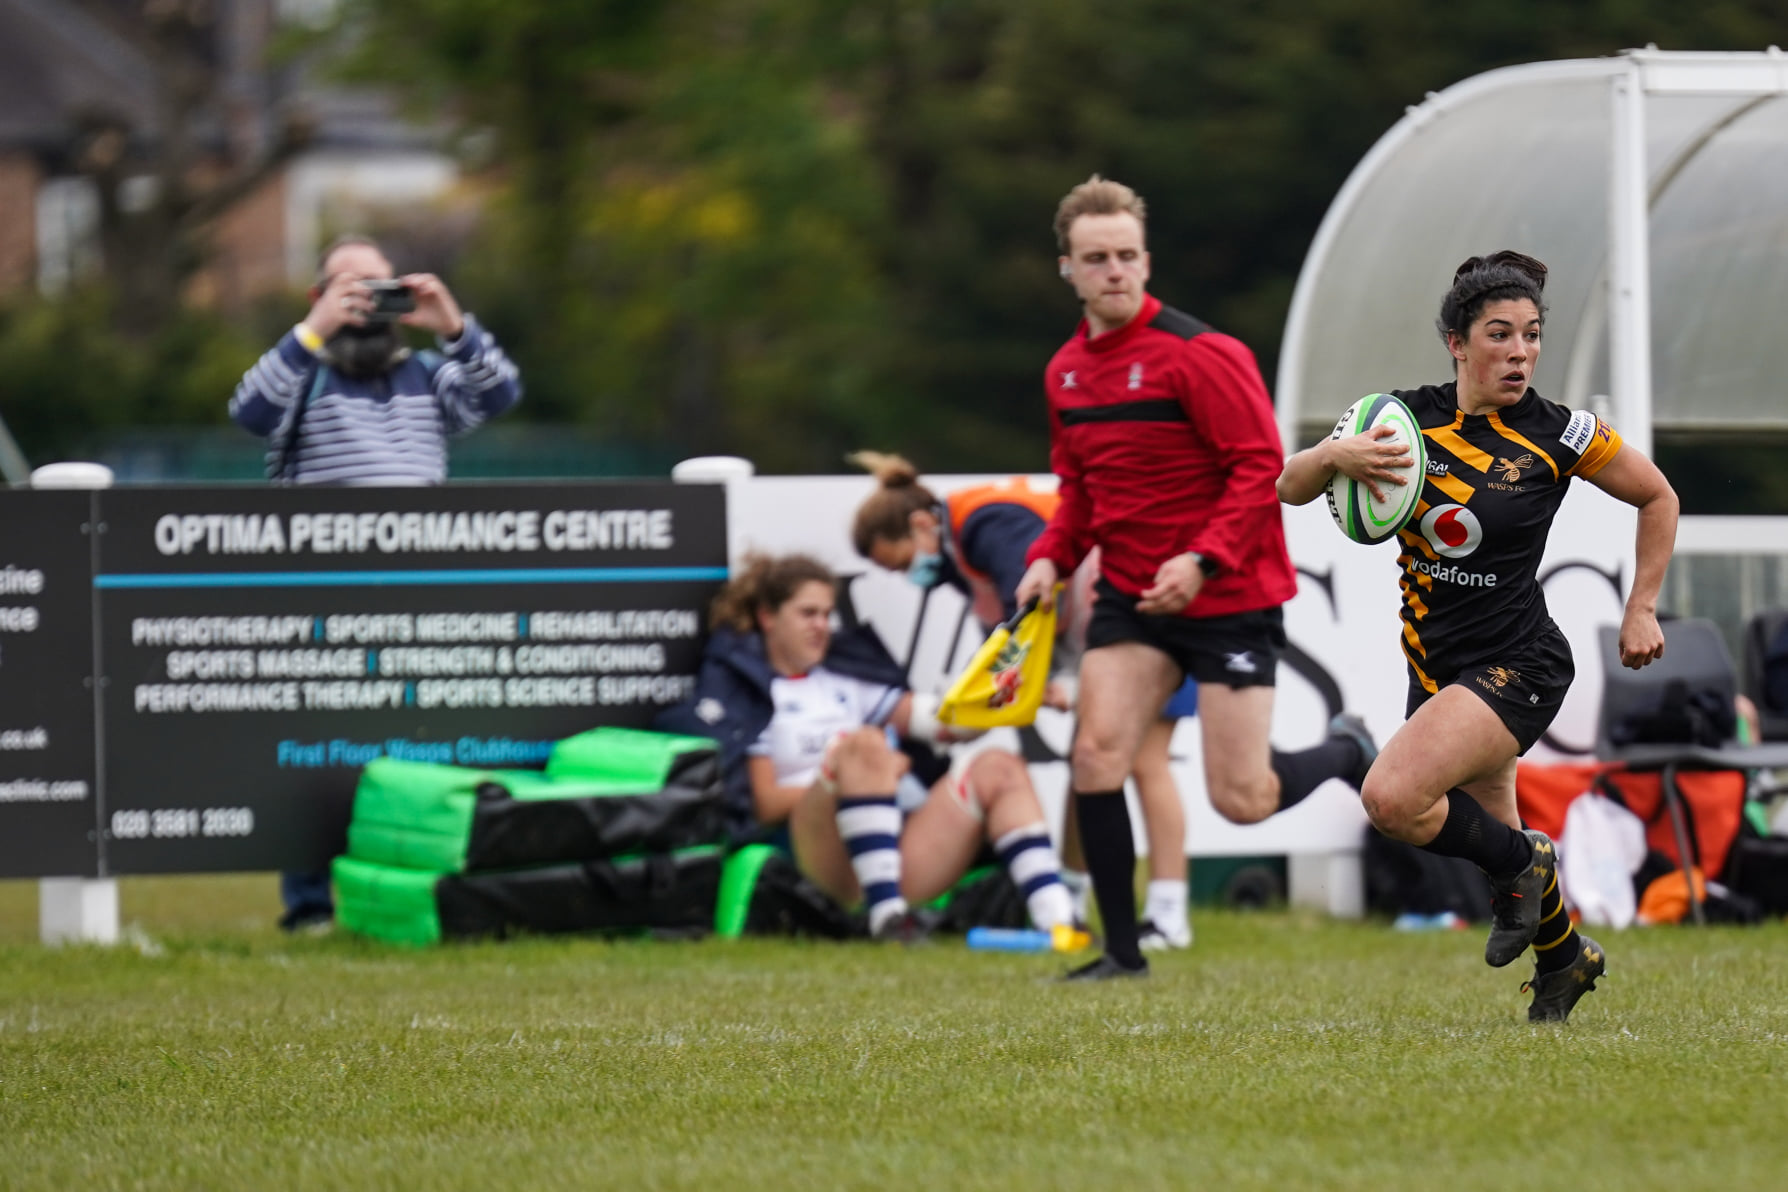 Wasps Captain Kate Alder runs in a try